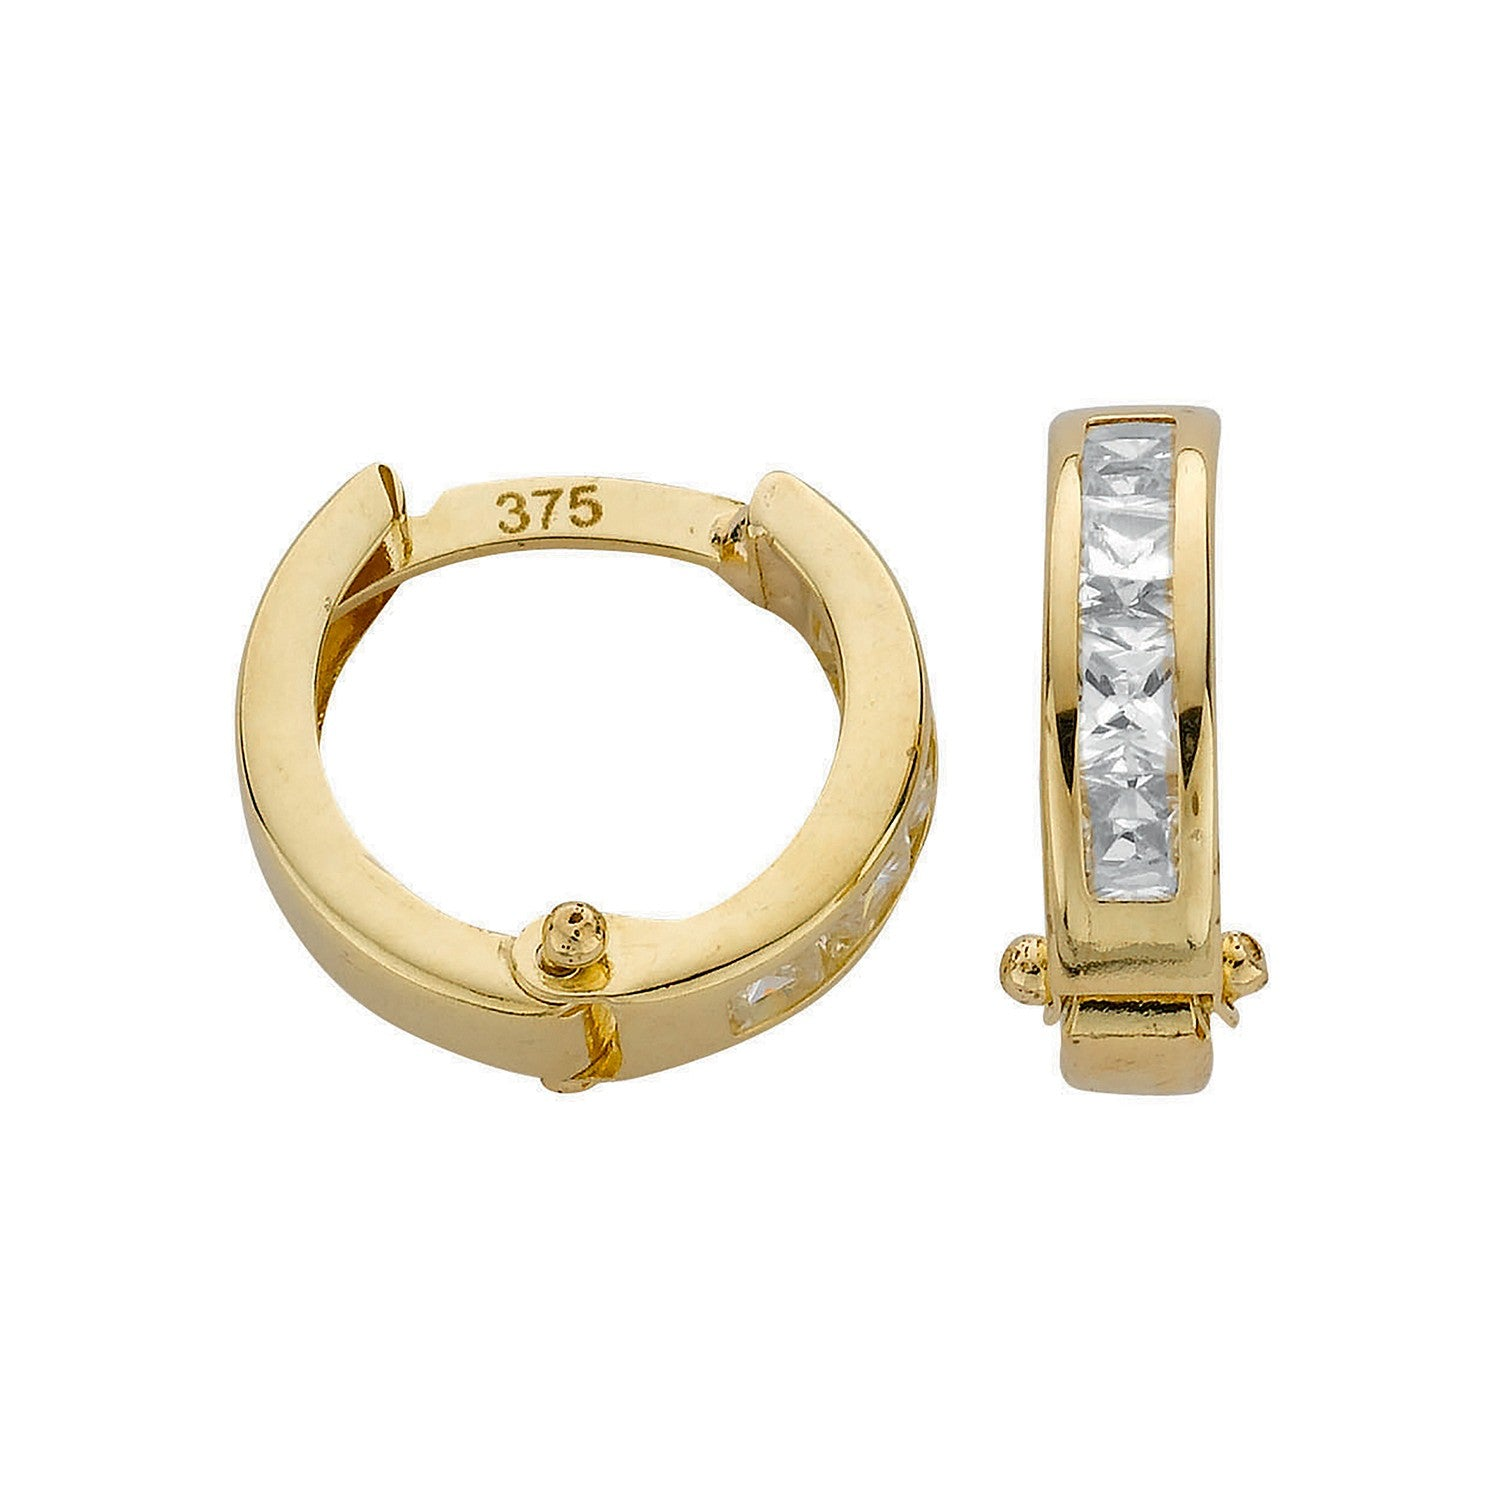 Y/G Princess Cut Cz Hoop Earrings